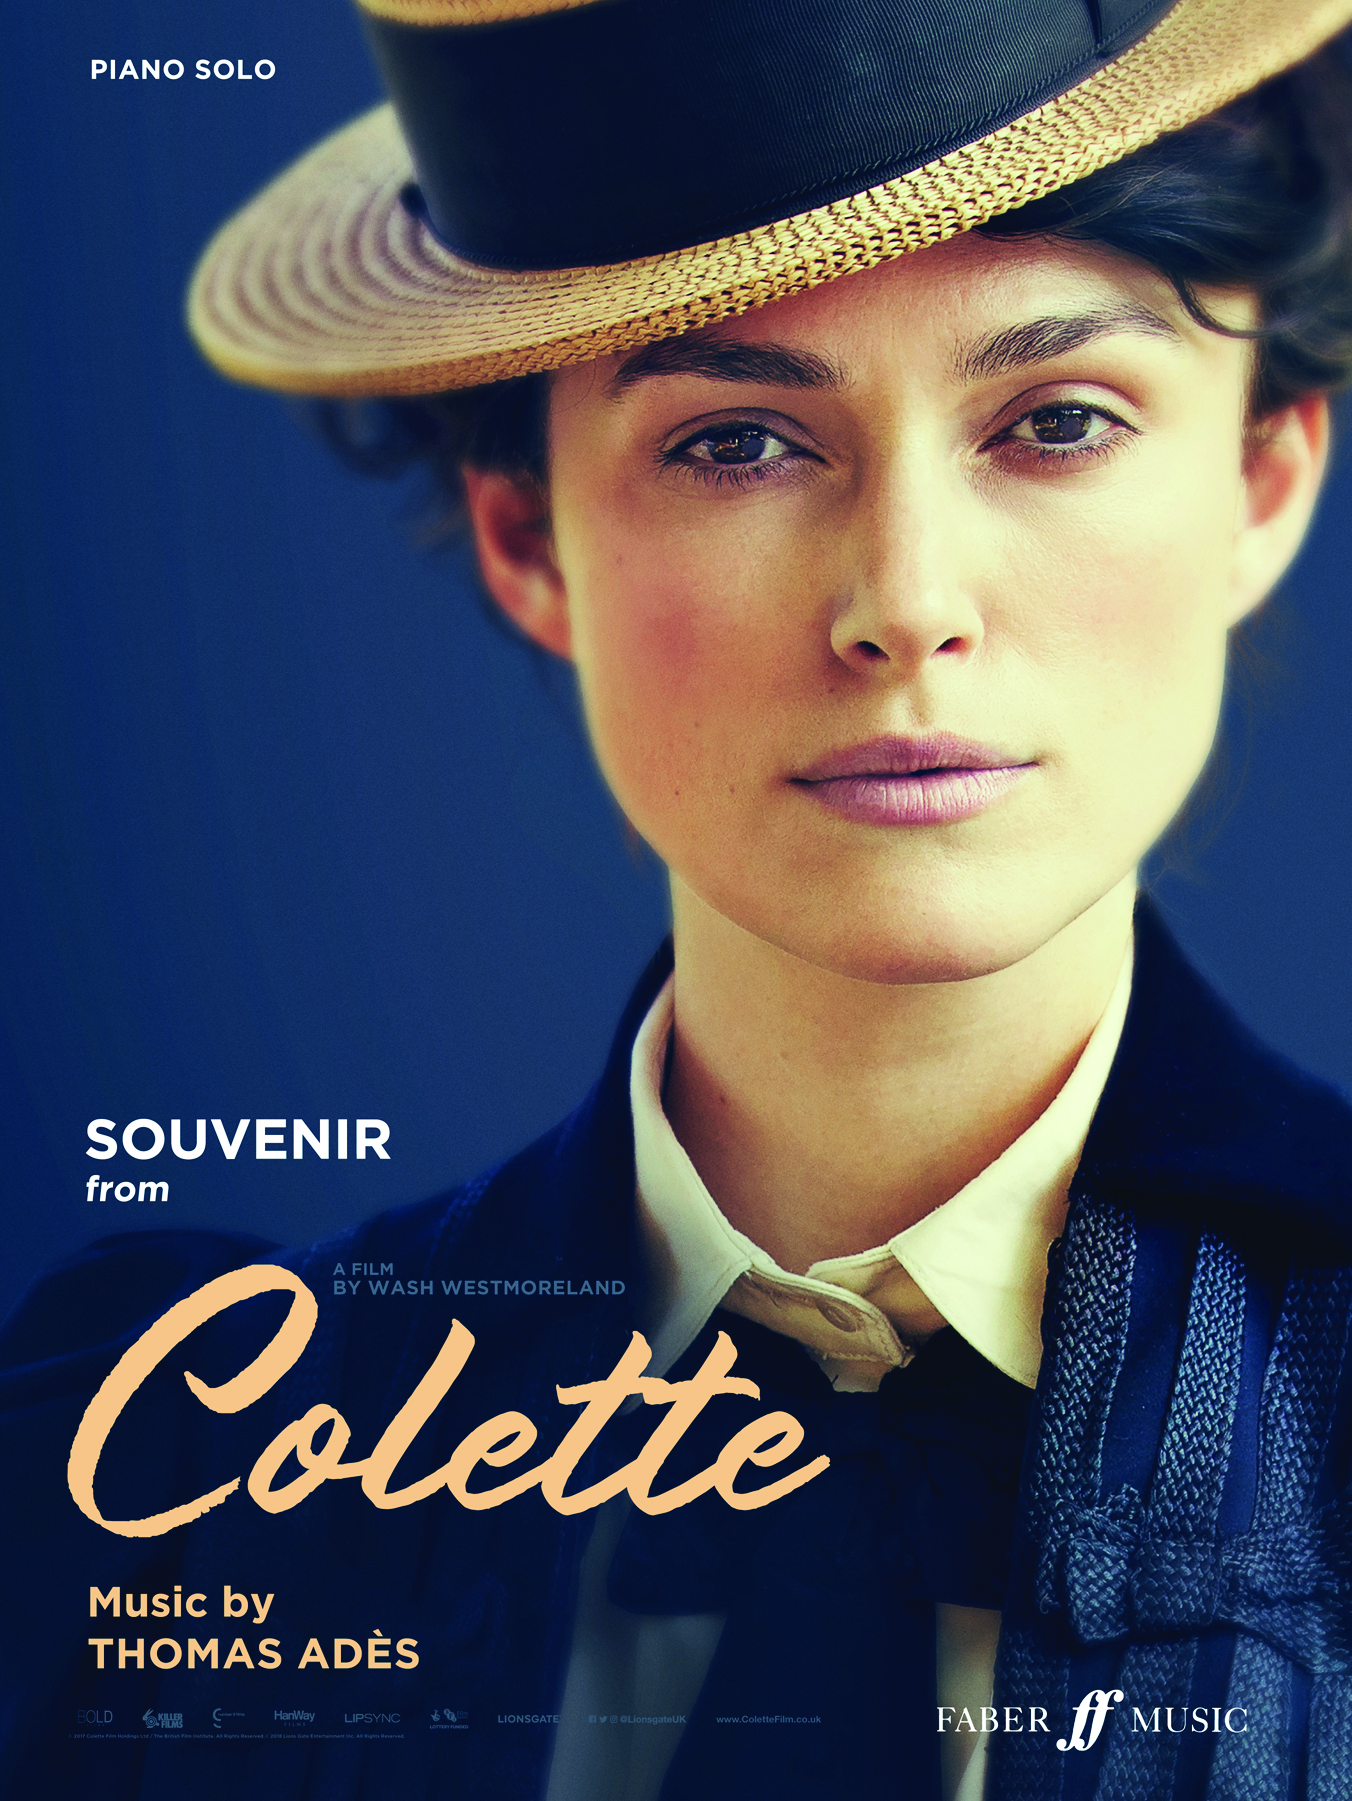 Free Gift: Souvenir from Colette